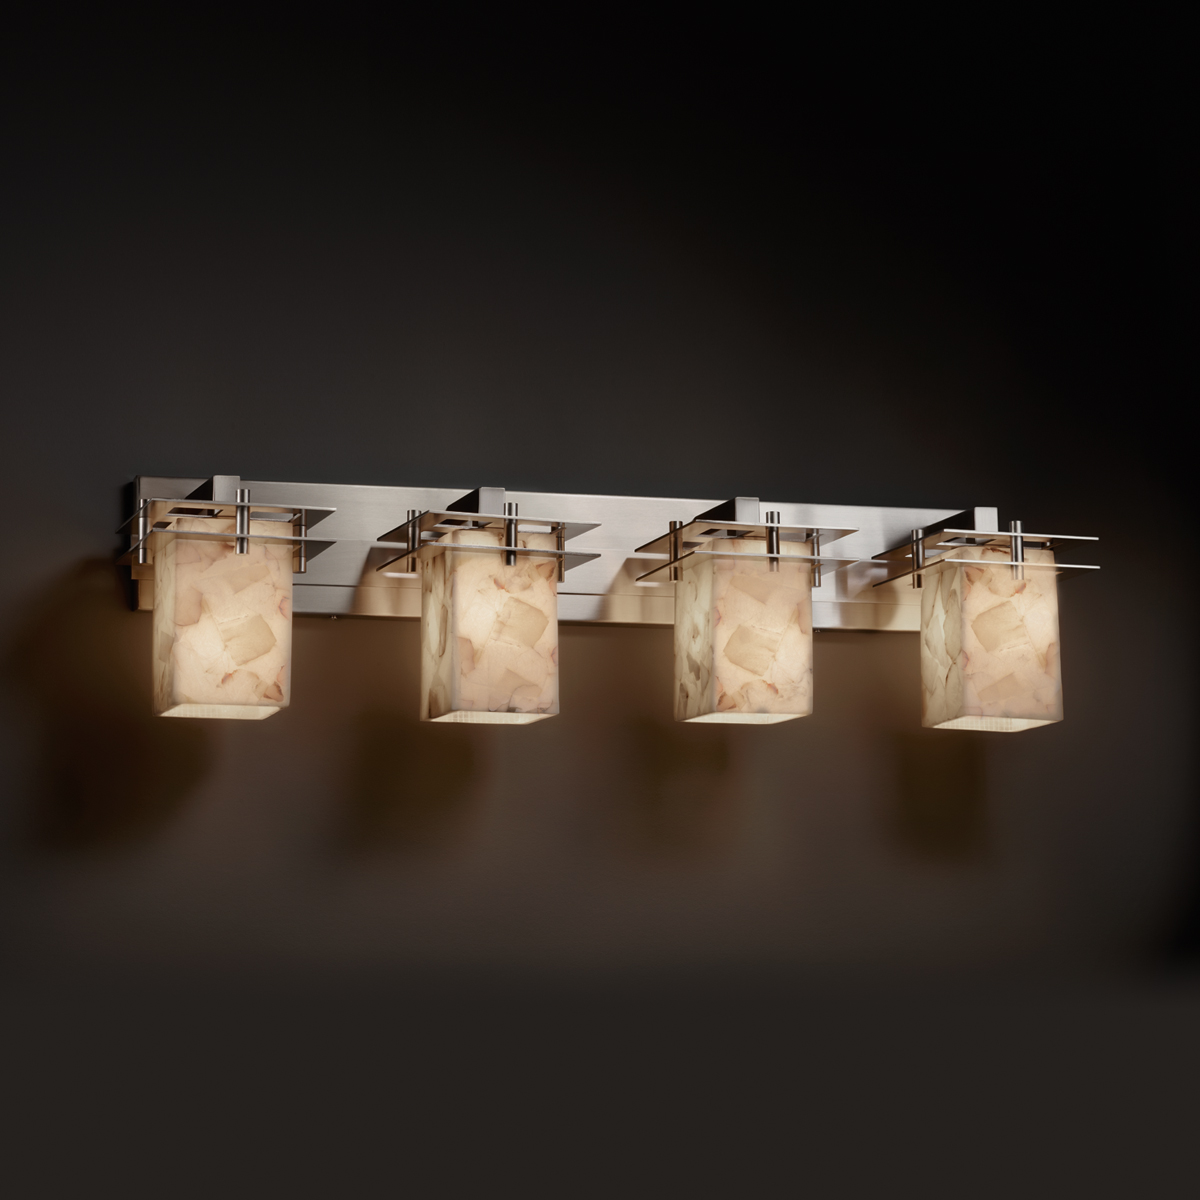 Justice Design (ALR-8174) Metropolis 4-Light Bath Bar from the Alabaster Rocks! Collection